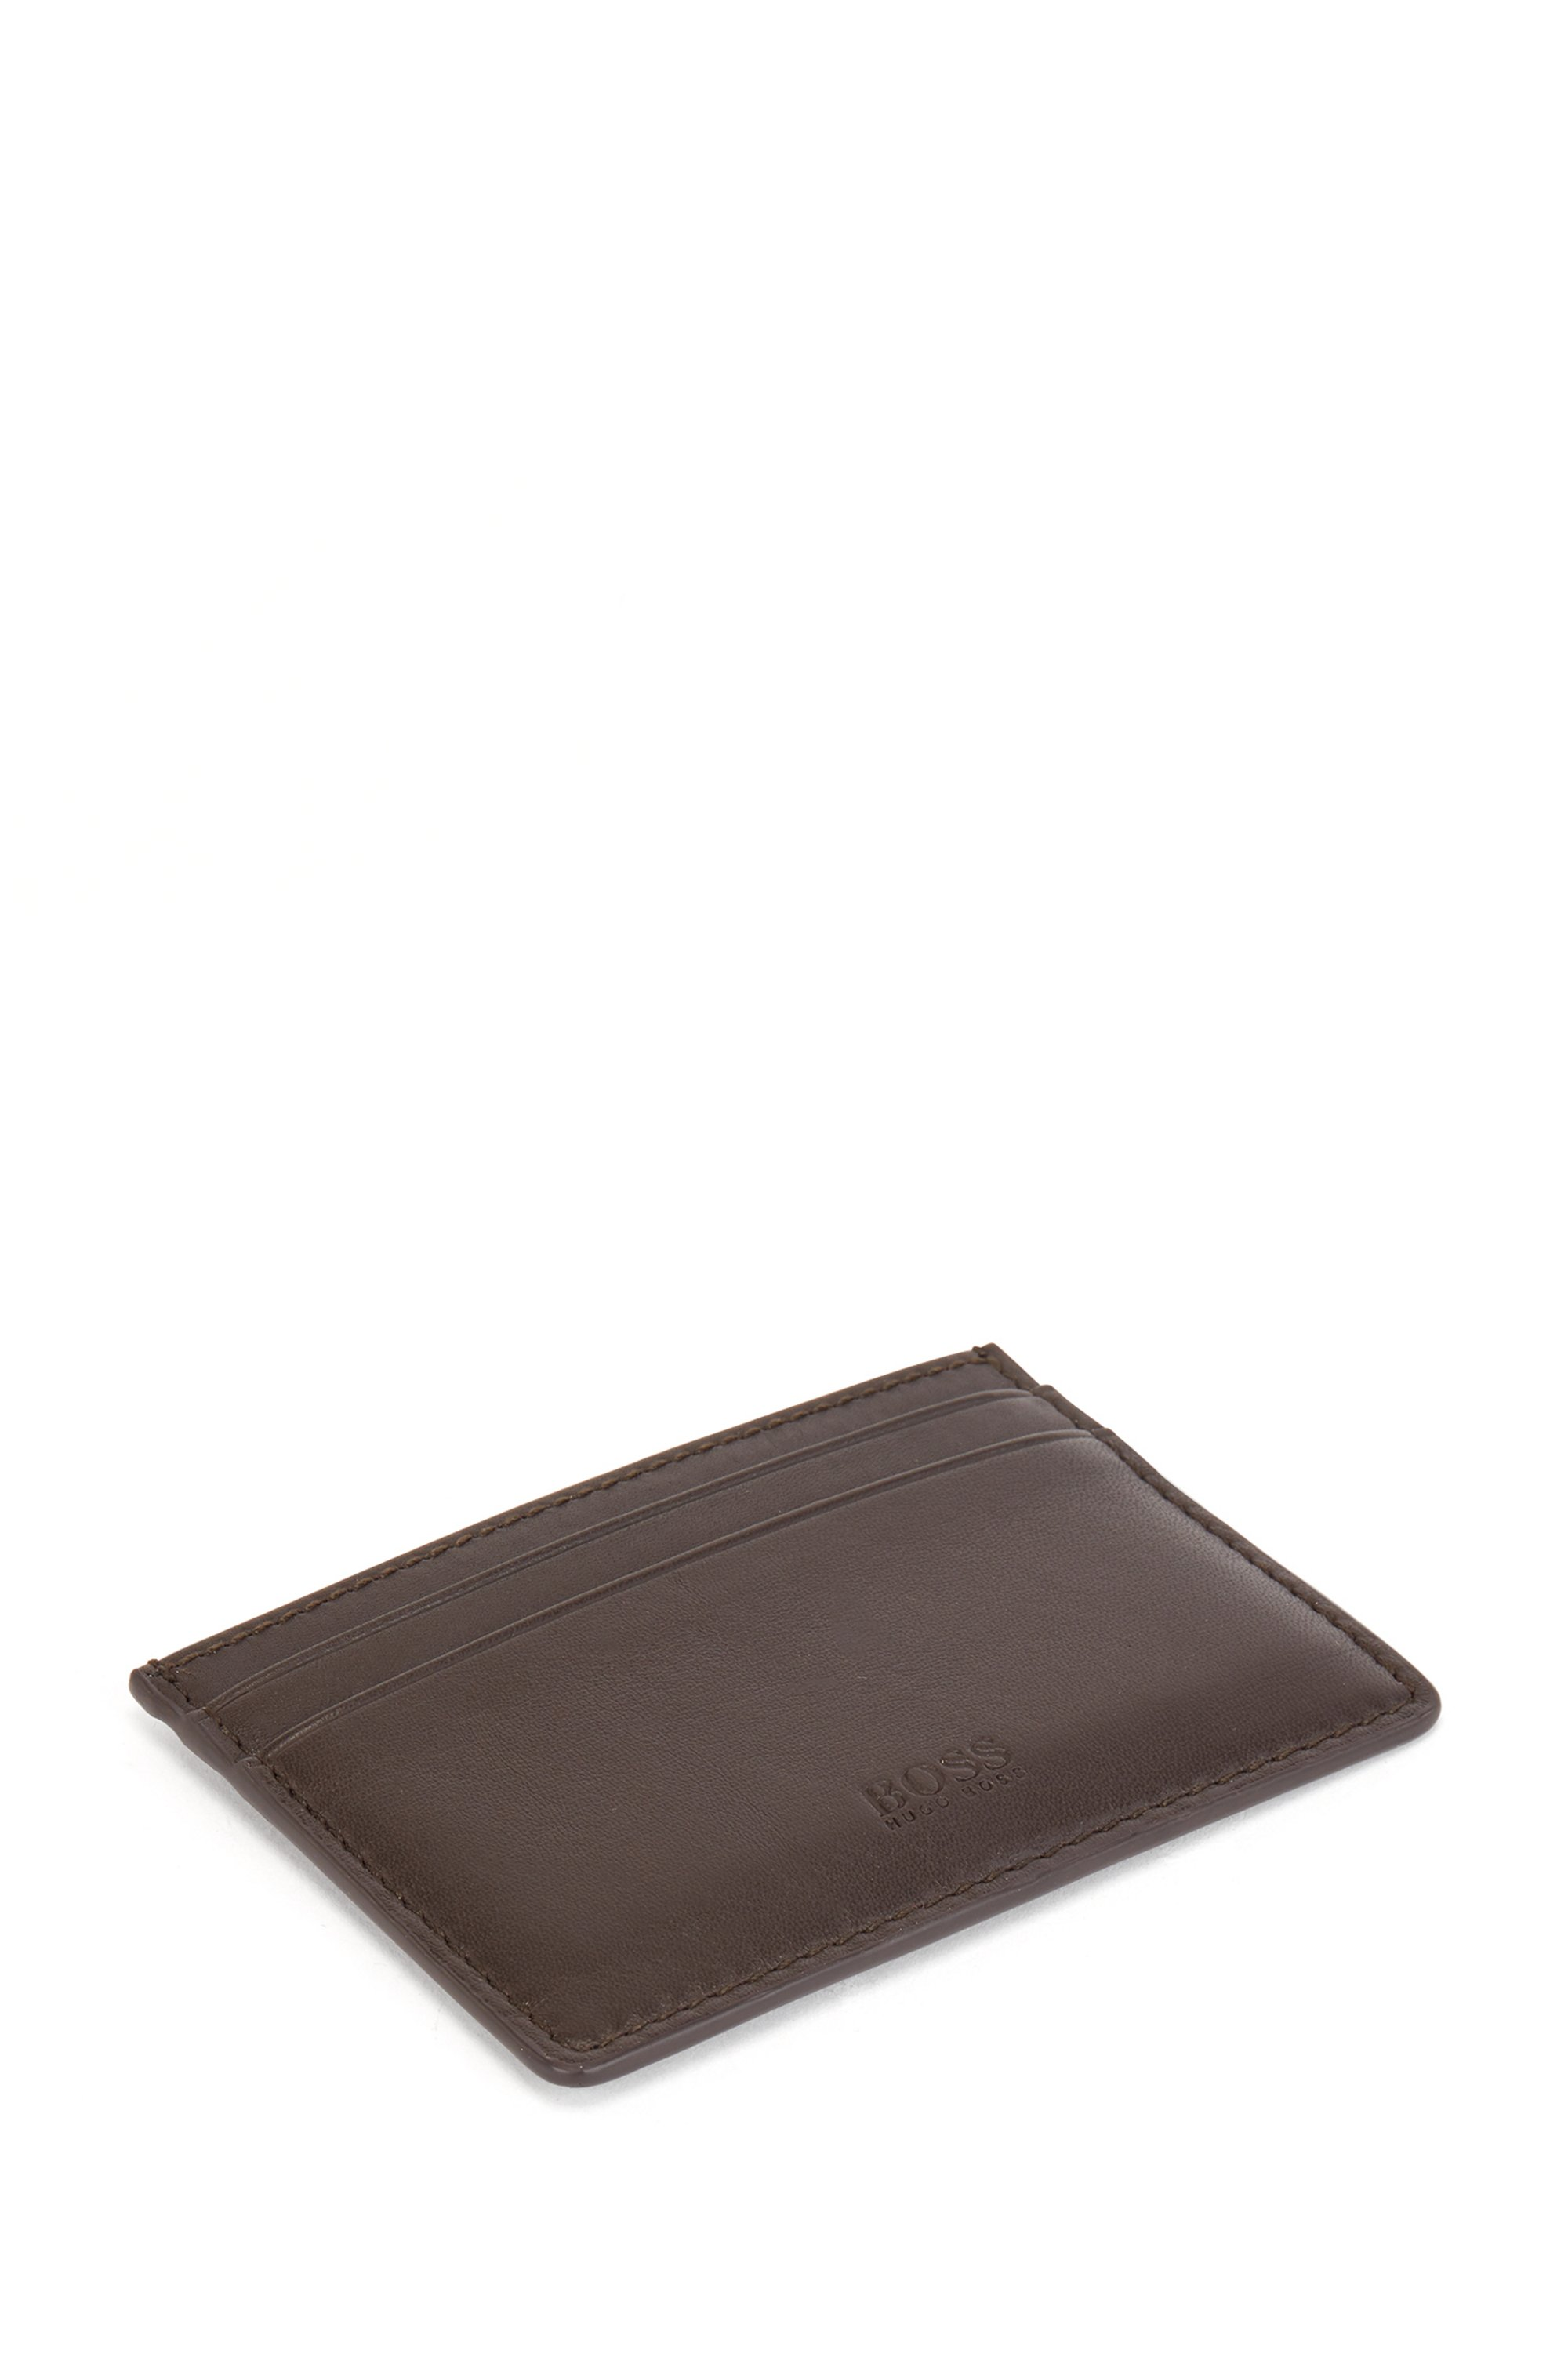 Card holder in nappa leather with blind-embossed logo